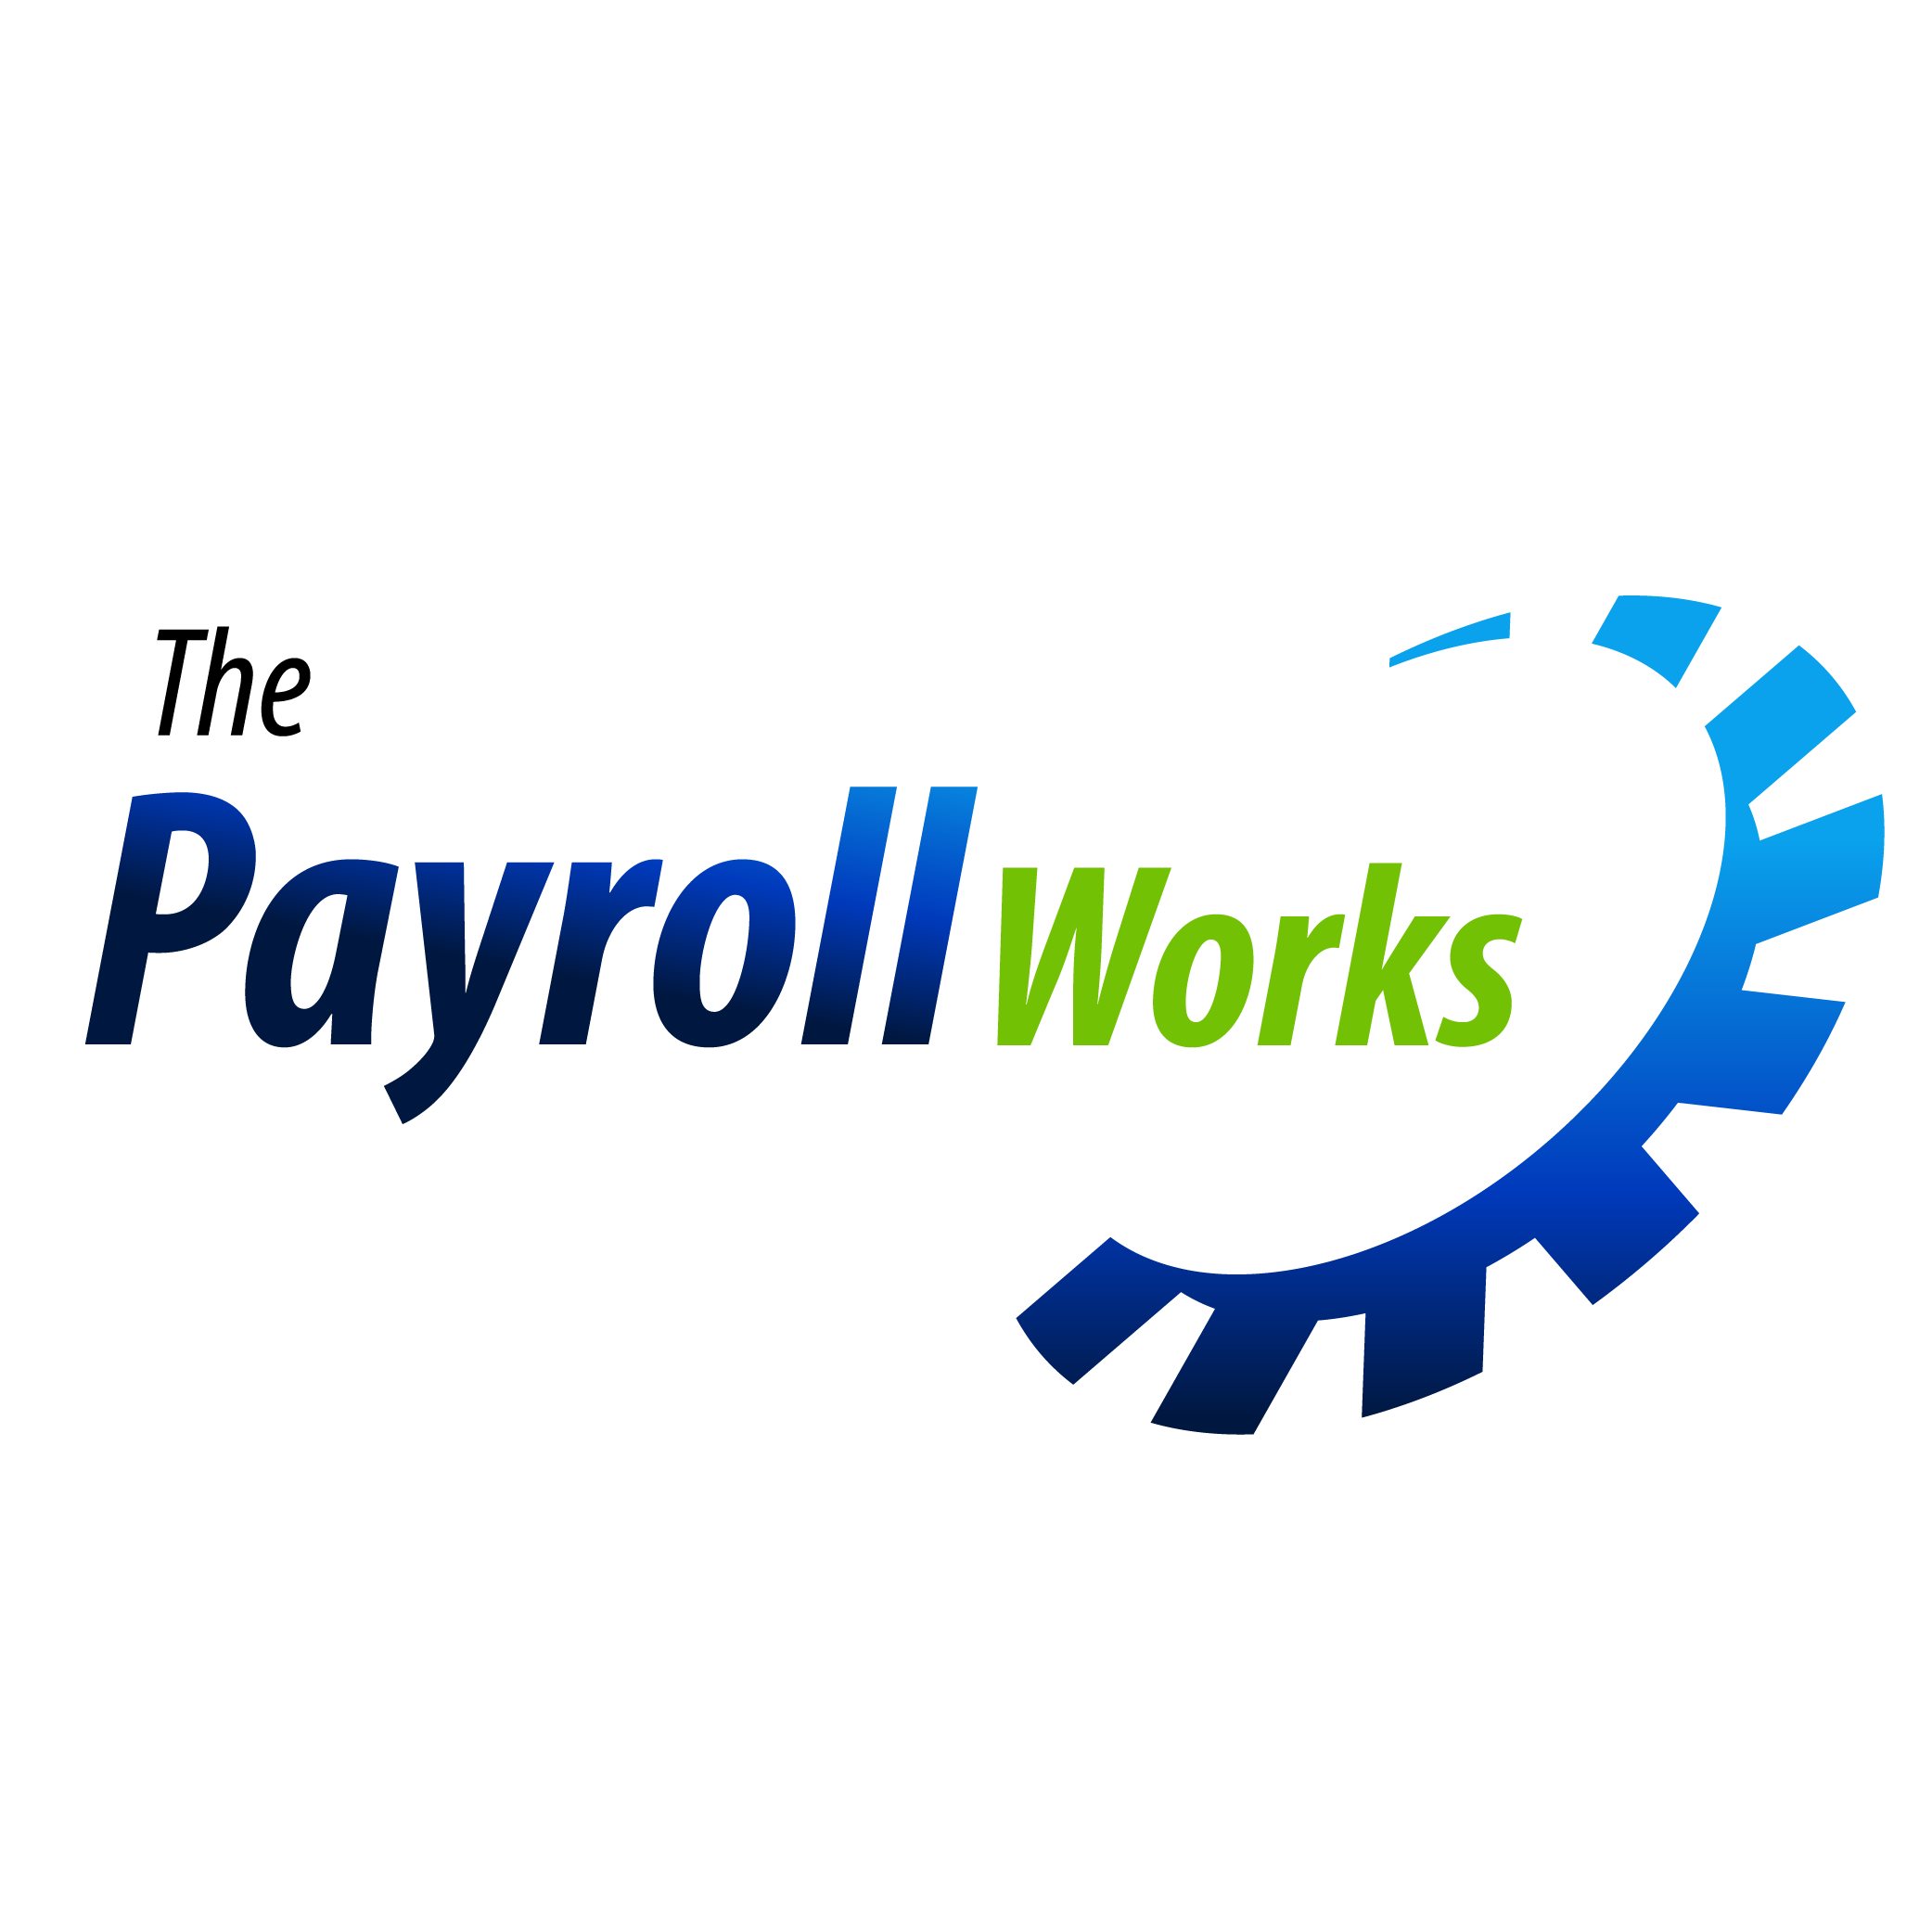 Logo Design by Private User - Entry No. 18 in the Logo Design Contest Captivating Logo Design for The Payroll Works.